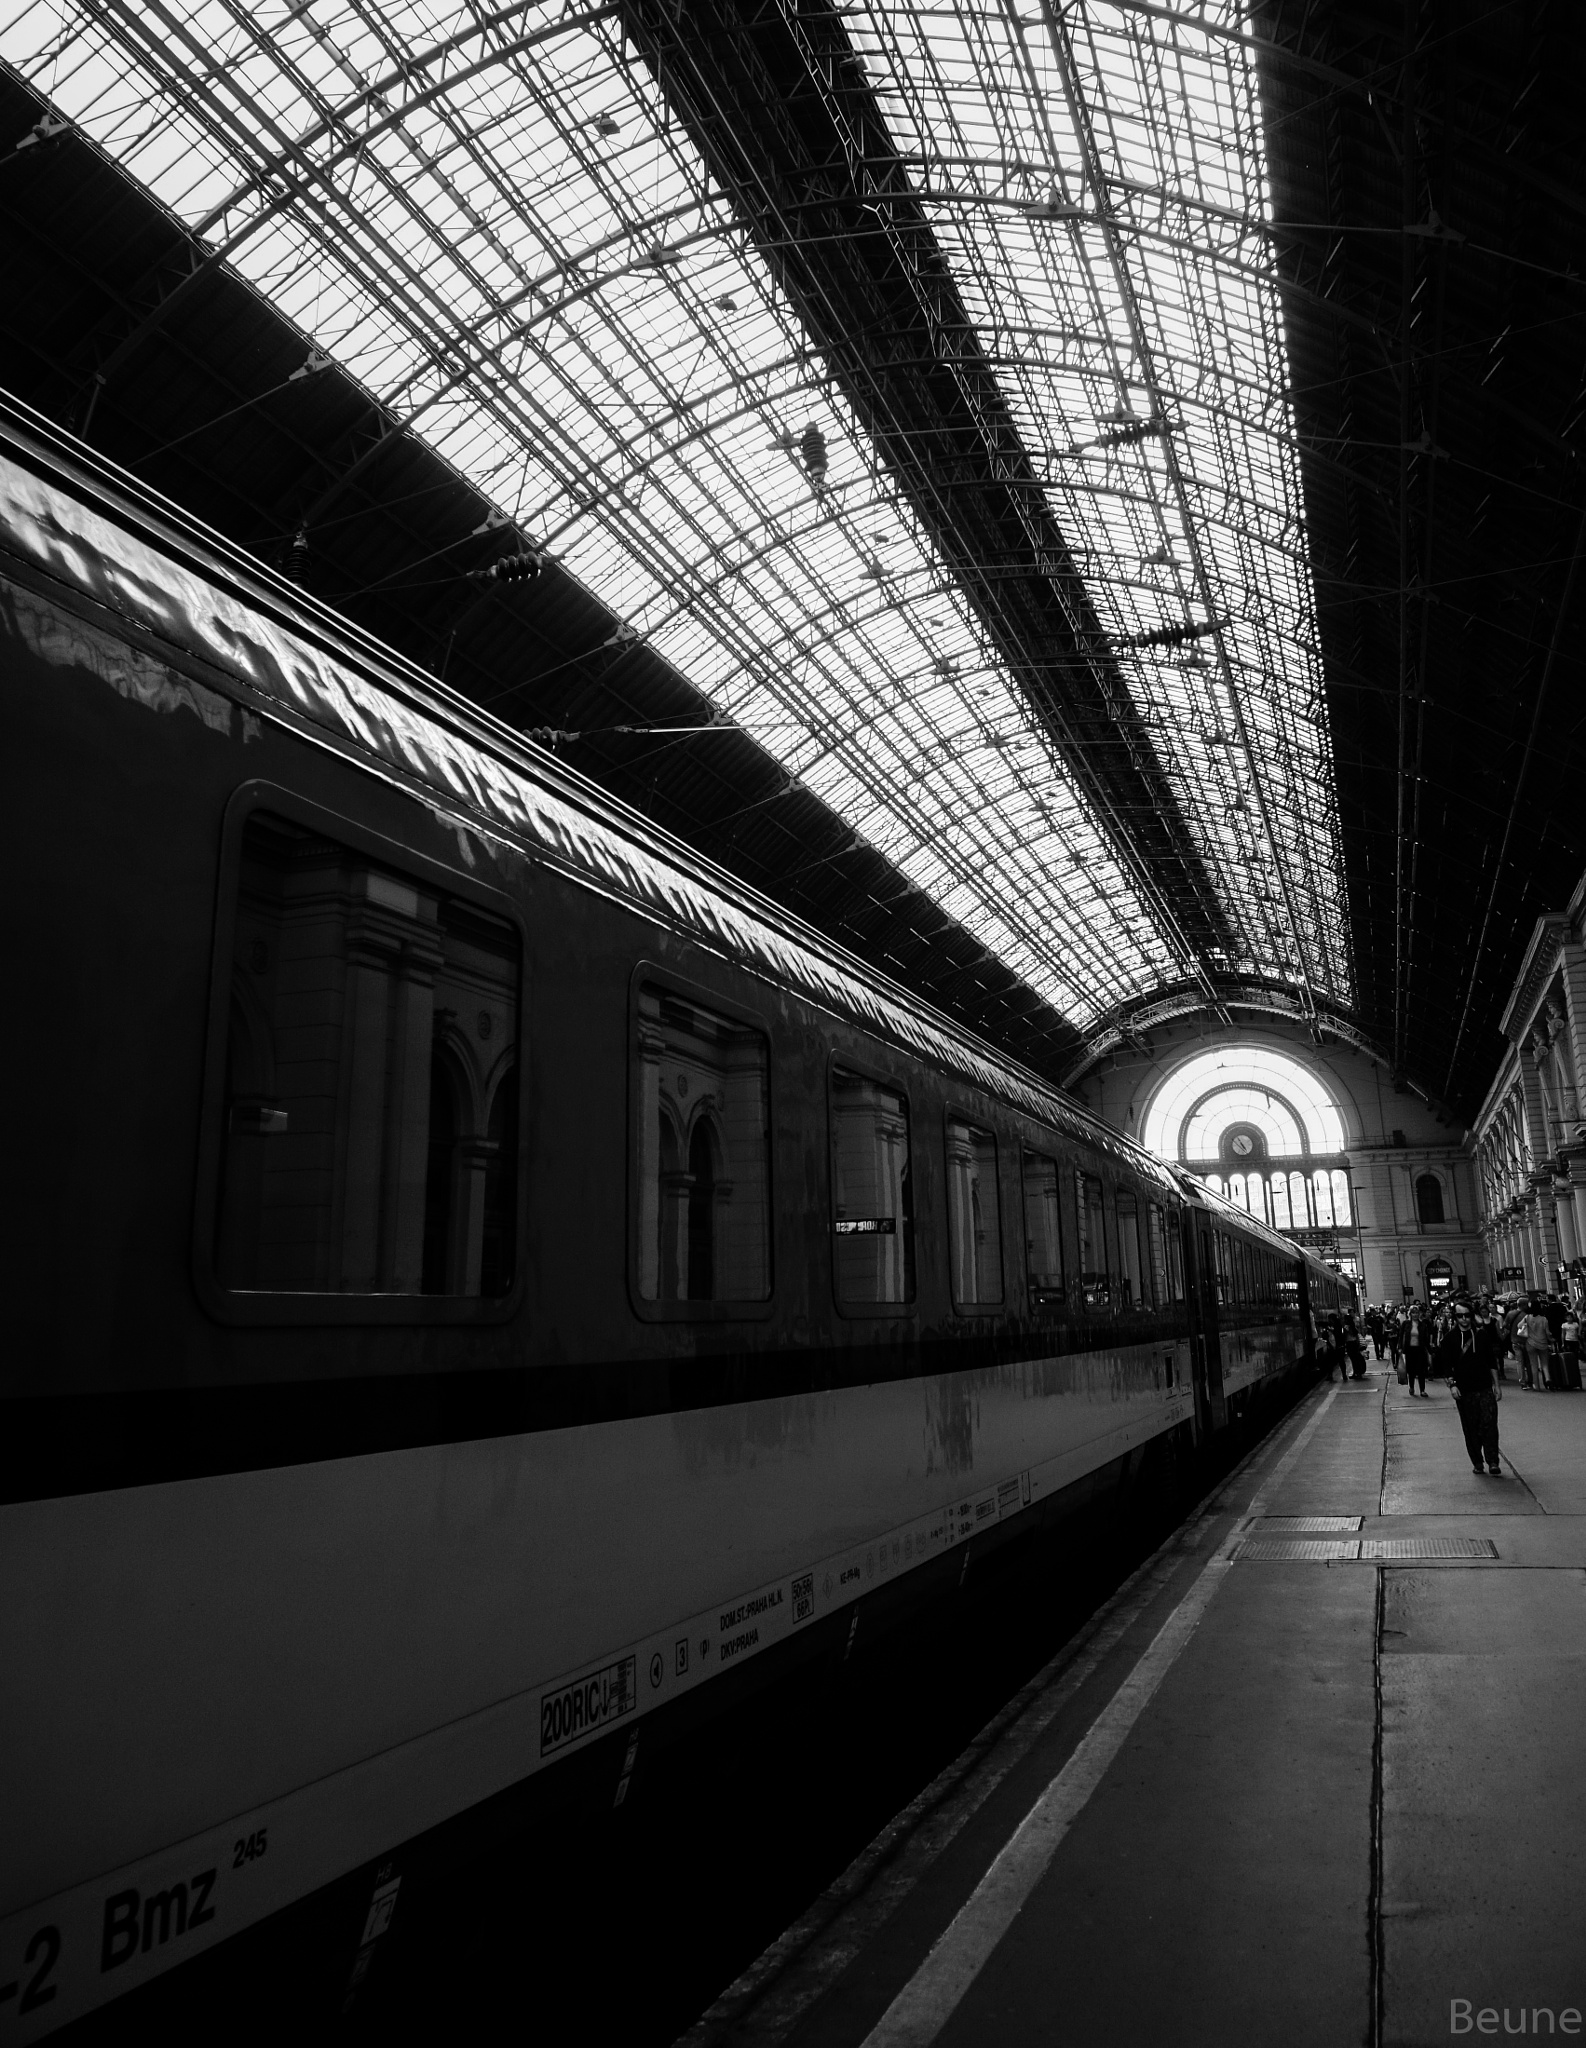 Train station by beune